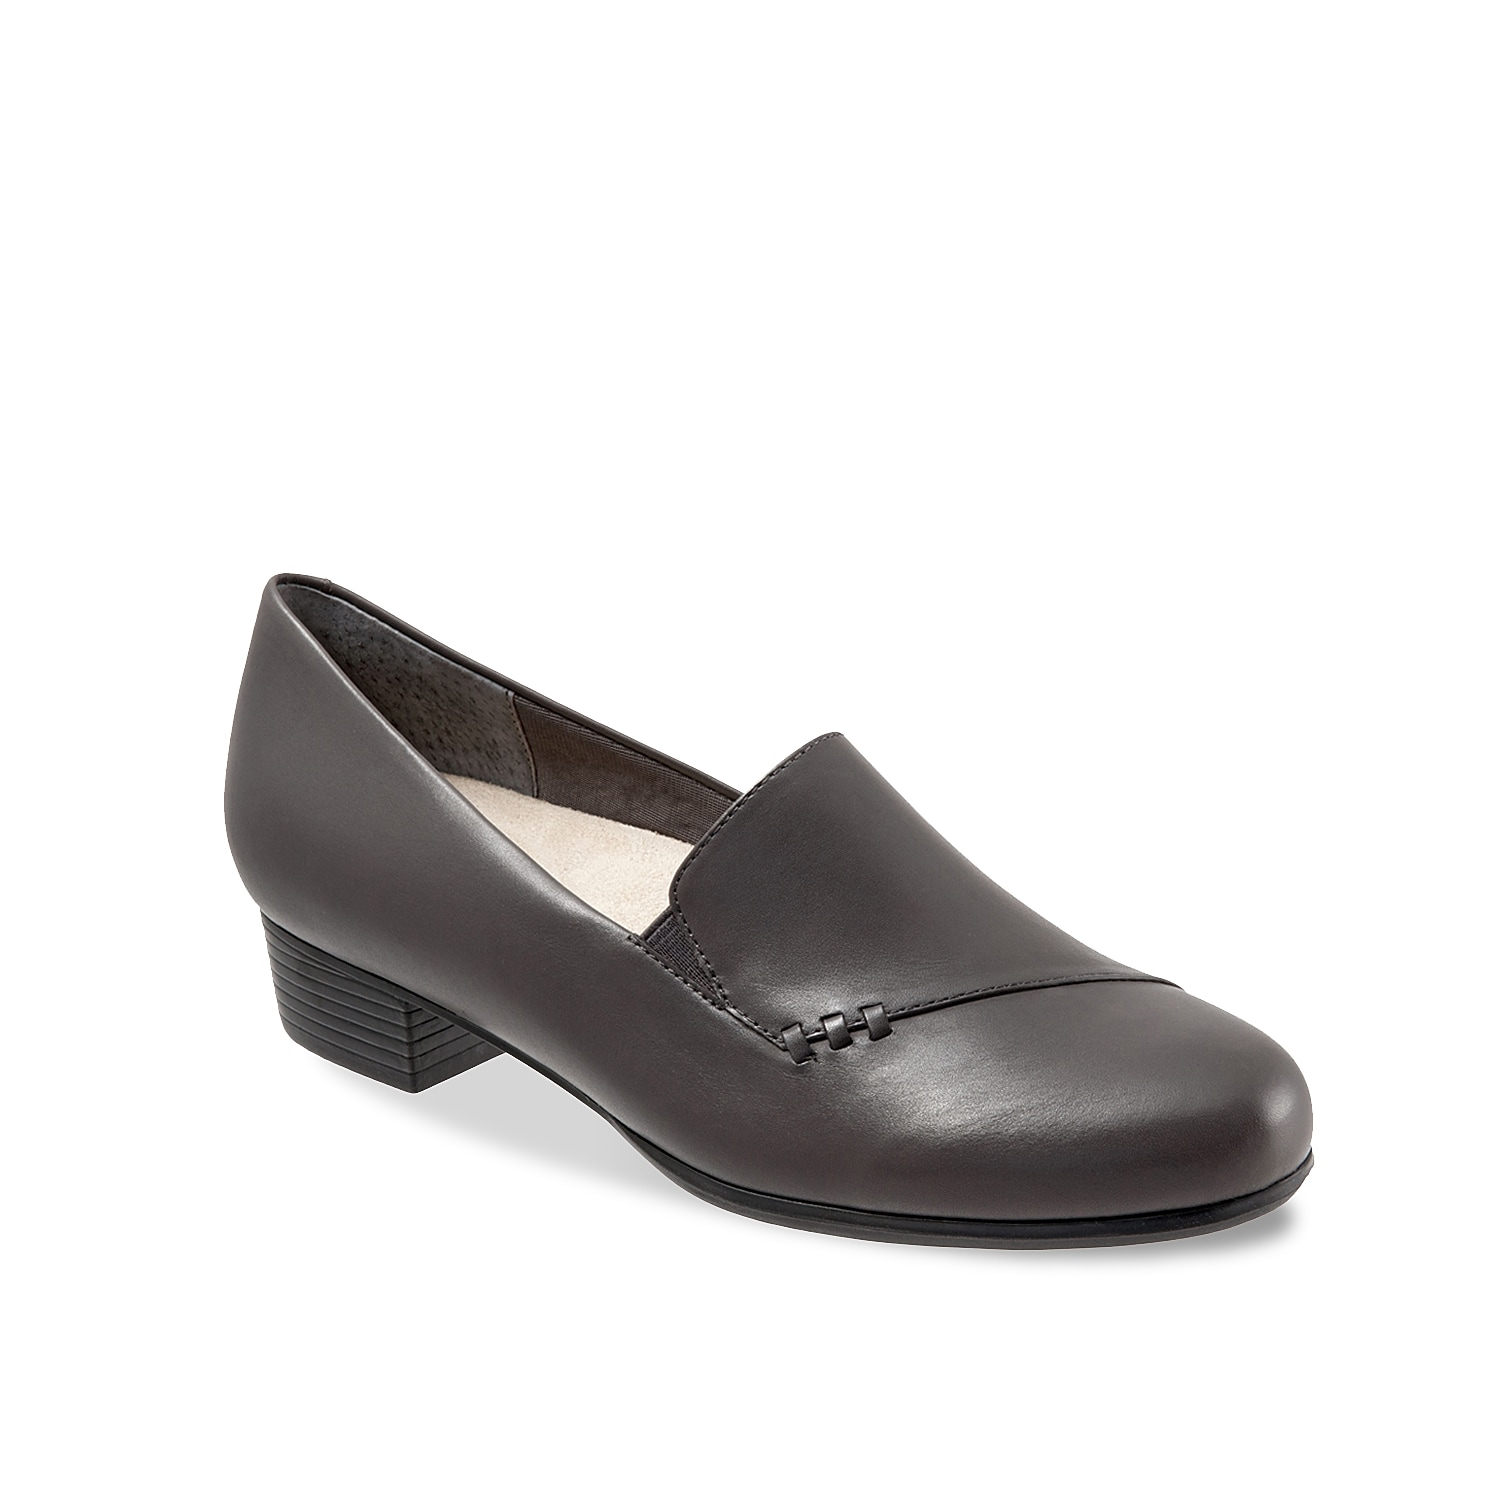 Finish off your tailored look with the Moment loafer from Trotters. An antimicrobial lining and removable cushioned insole creates a comfortable silhouette that you can go all day in.